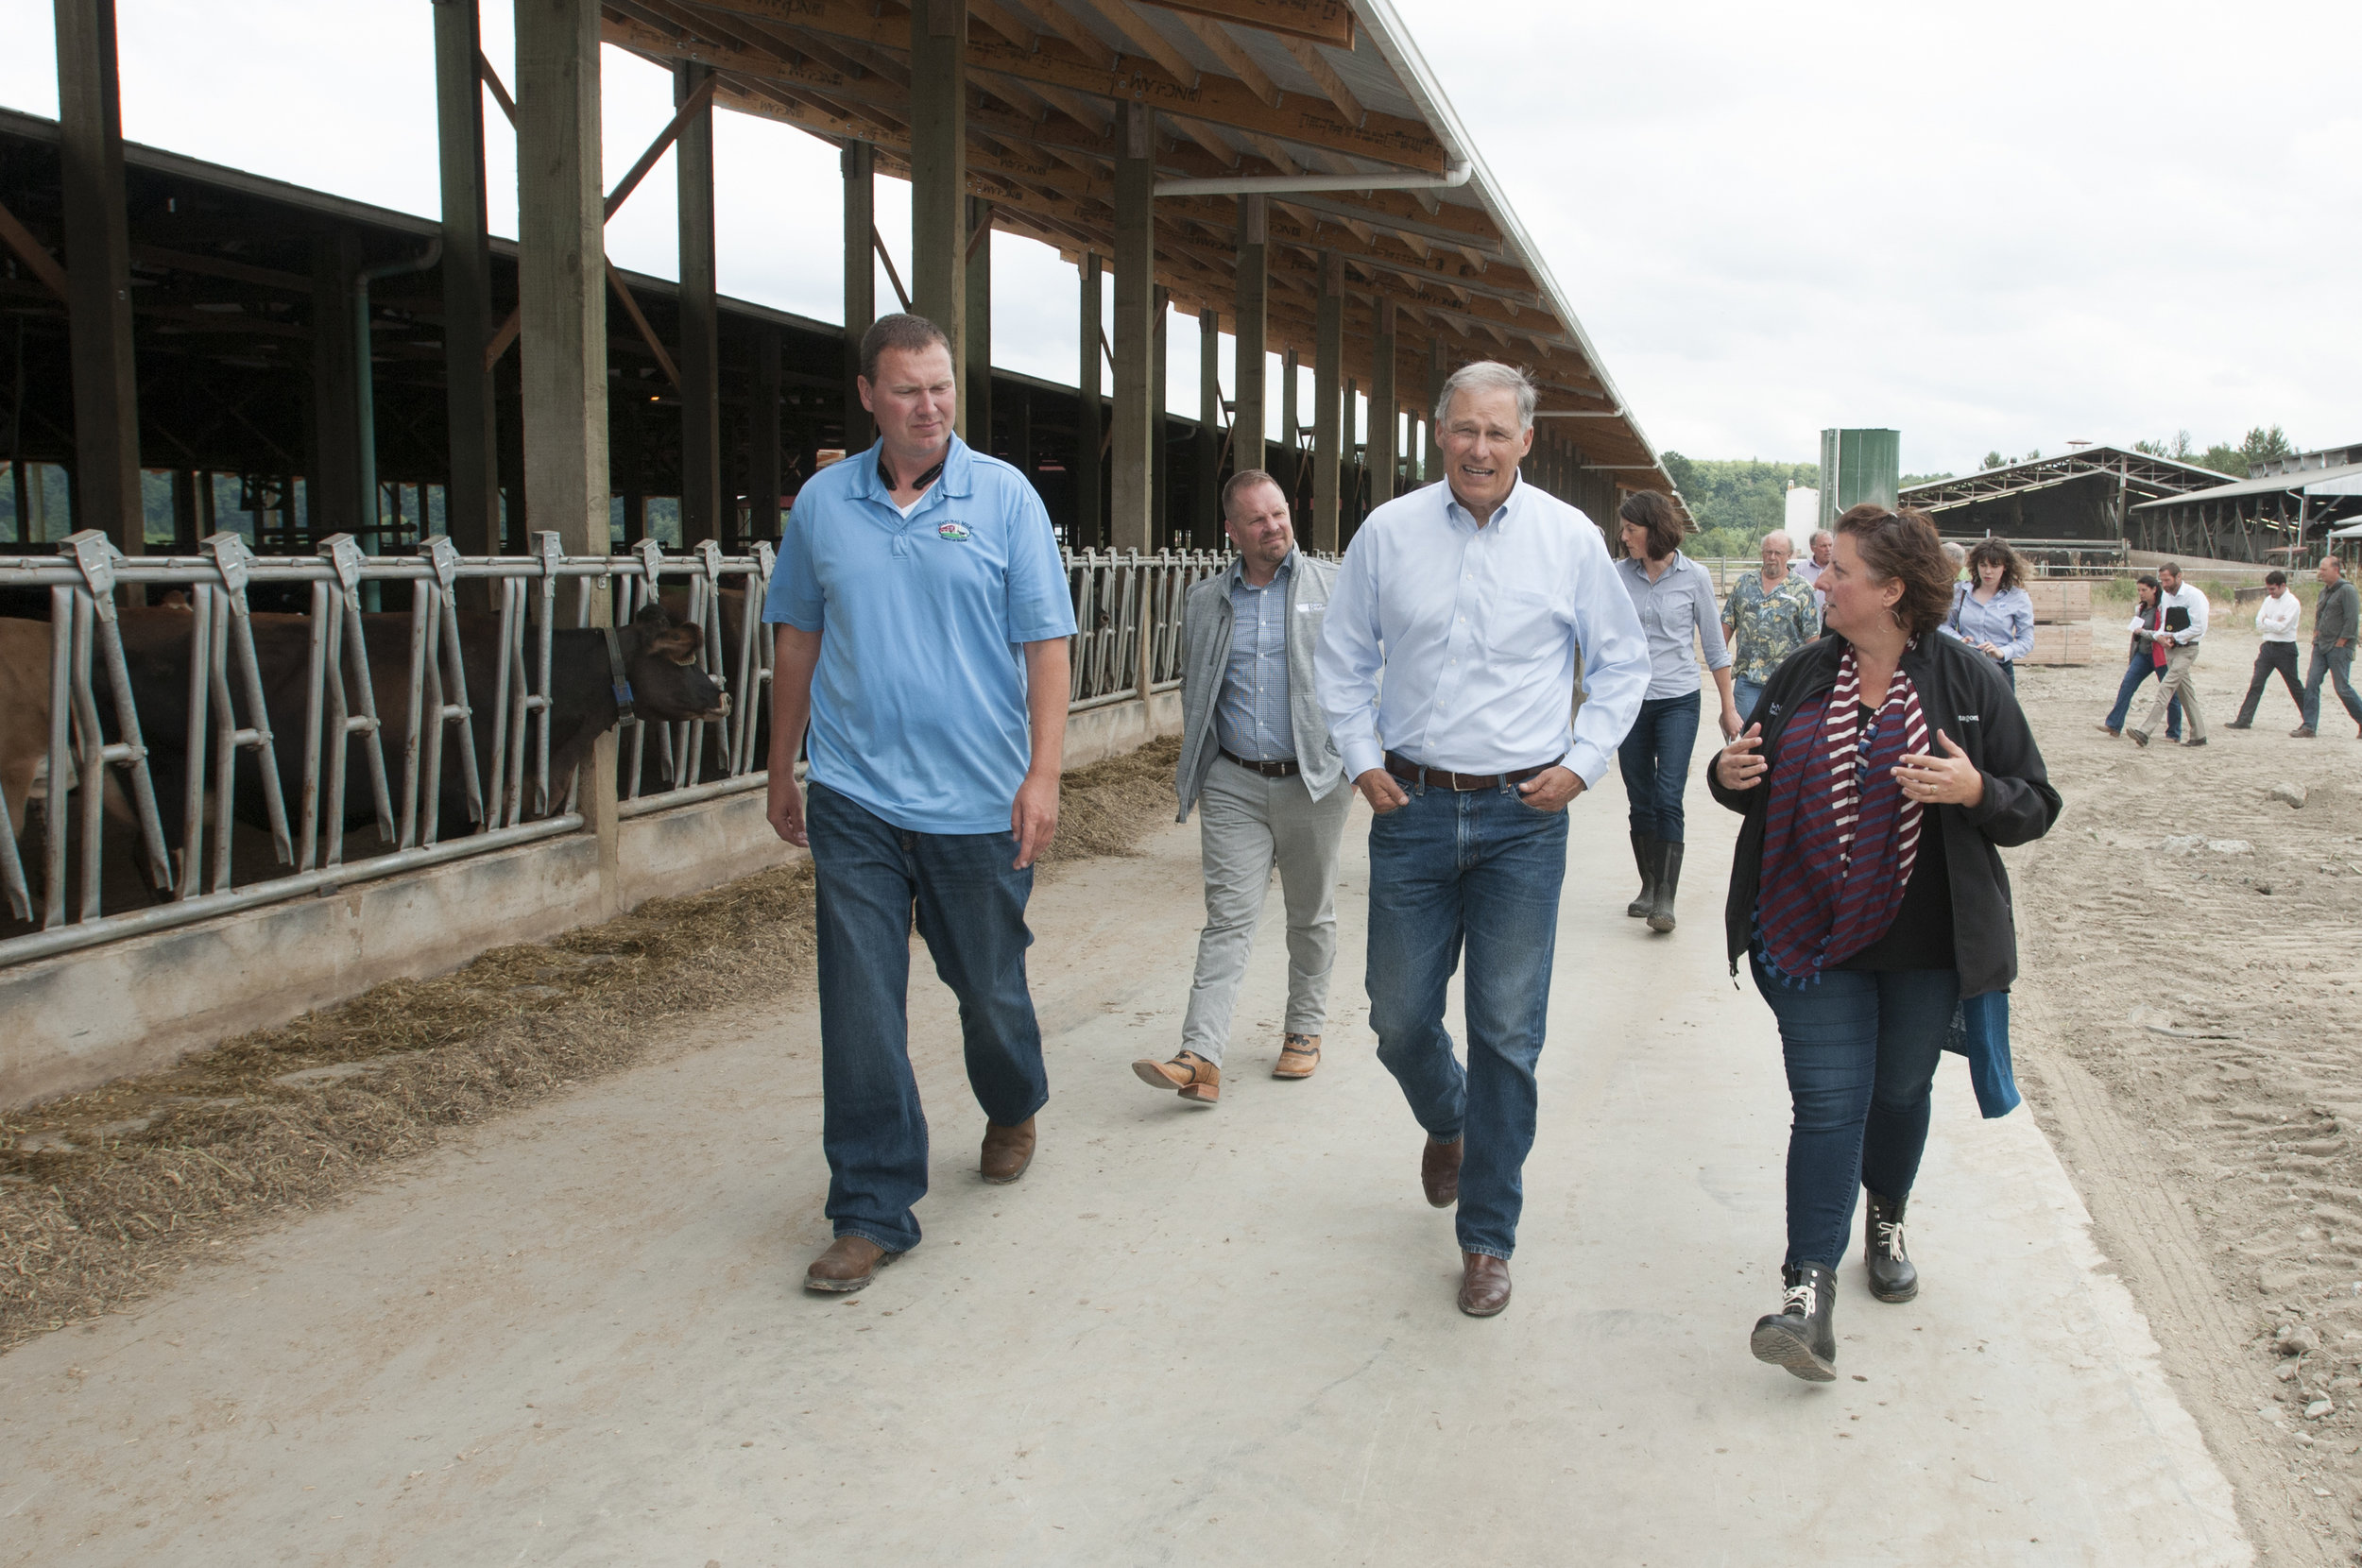 Jeremy Visser, left, gives Gov. Inslee, Jessie Israel and others a tour around the dairy farm. Photo by Hannah Letinich.